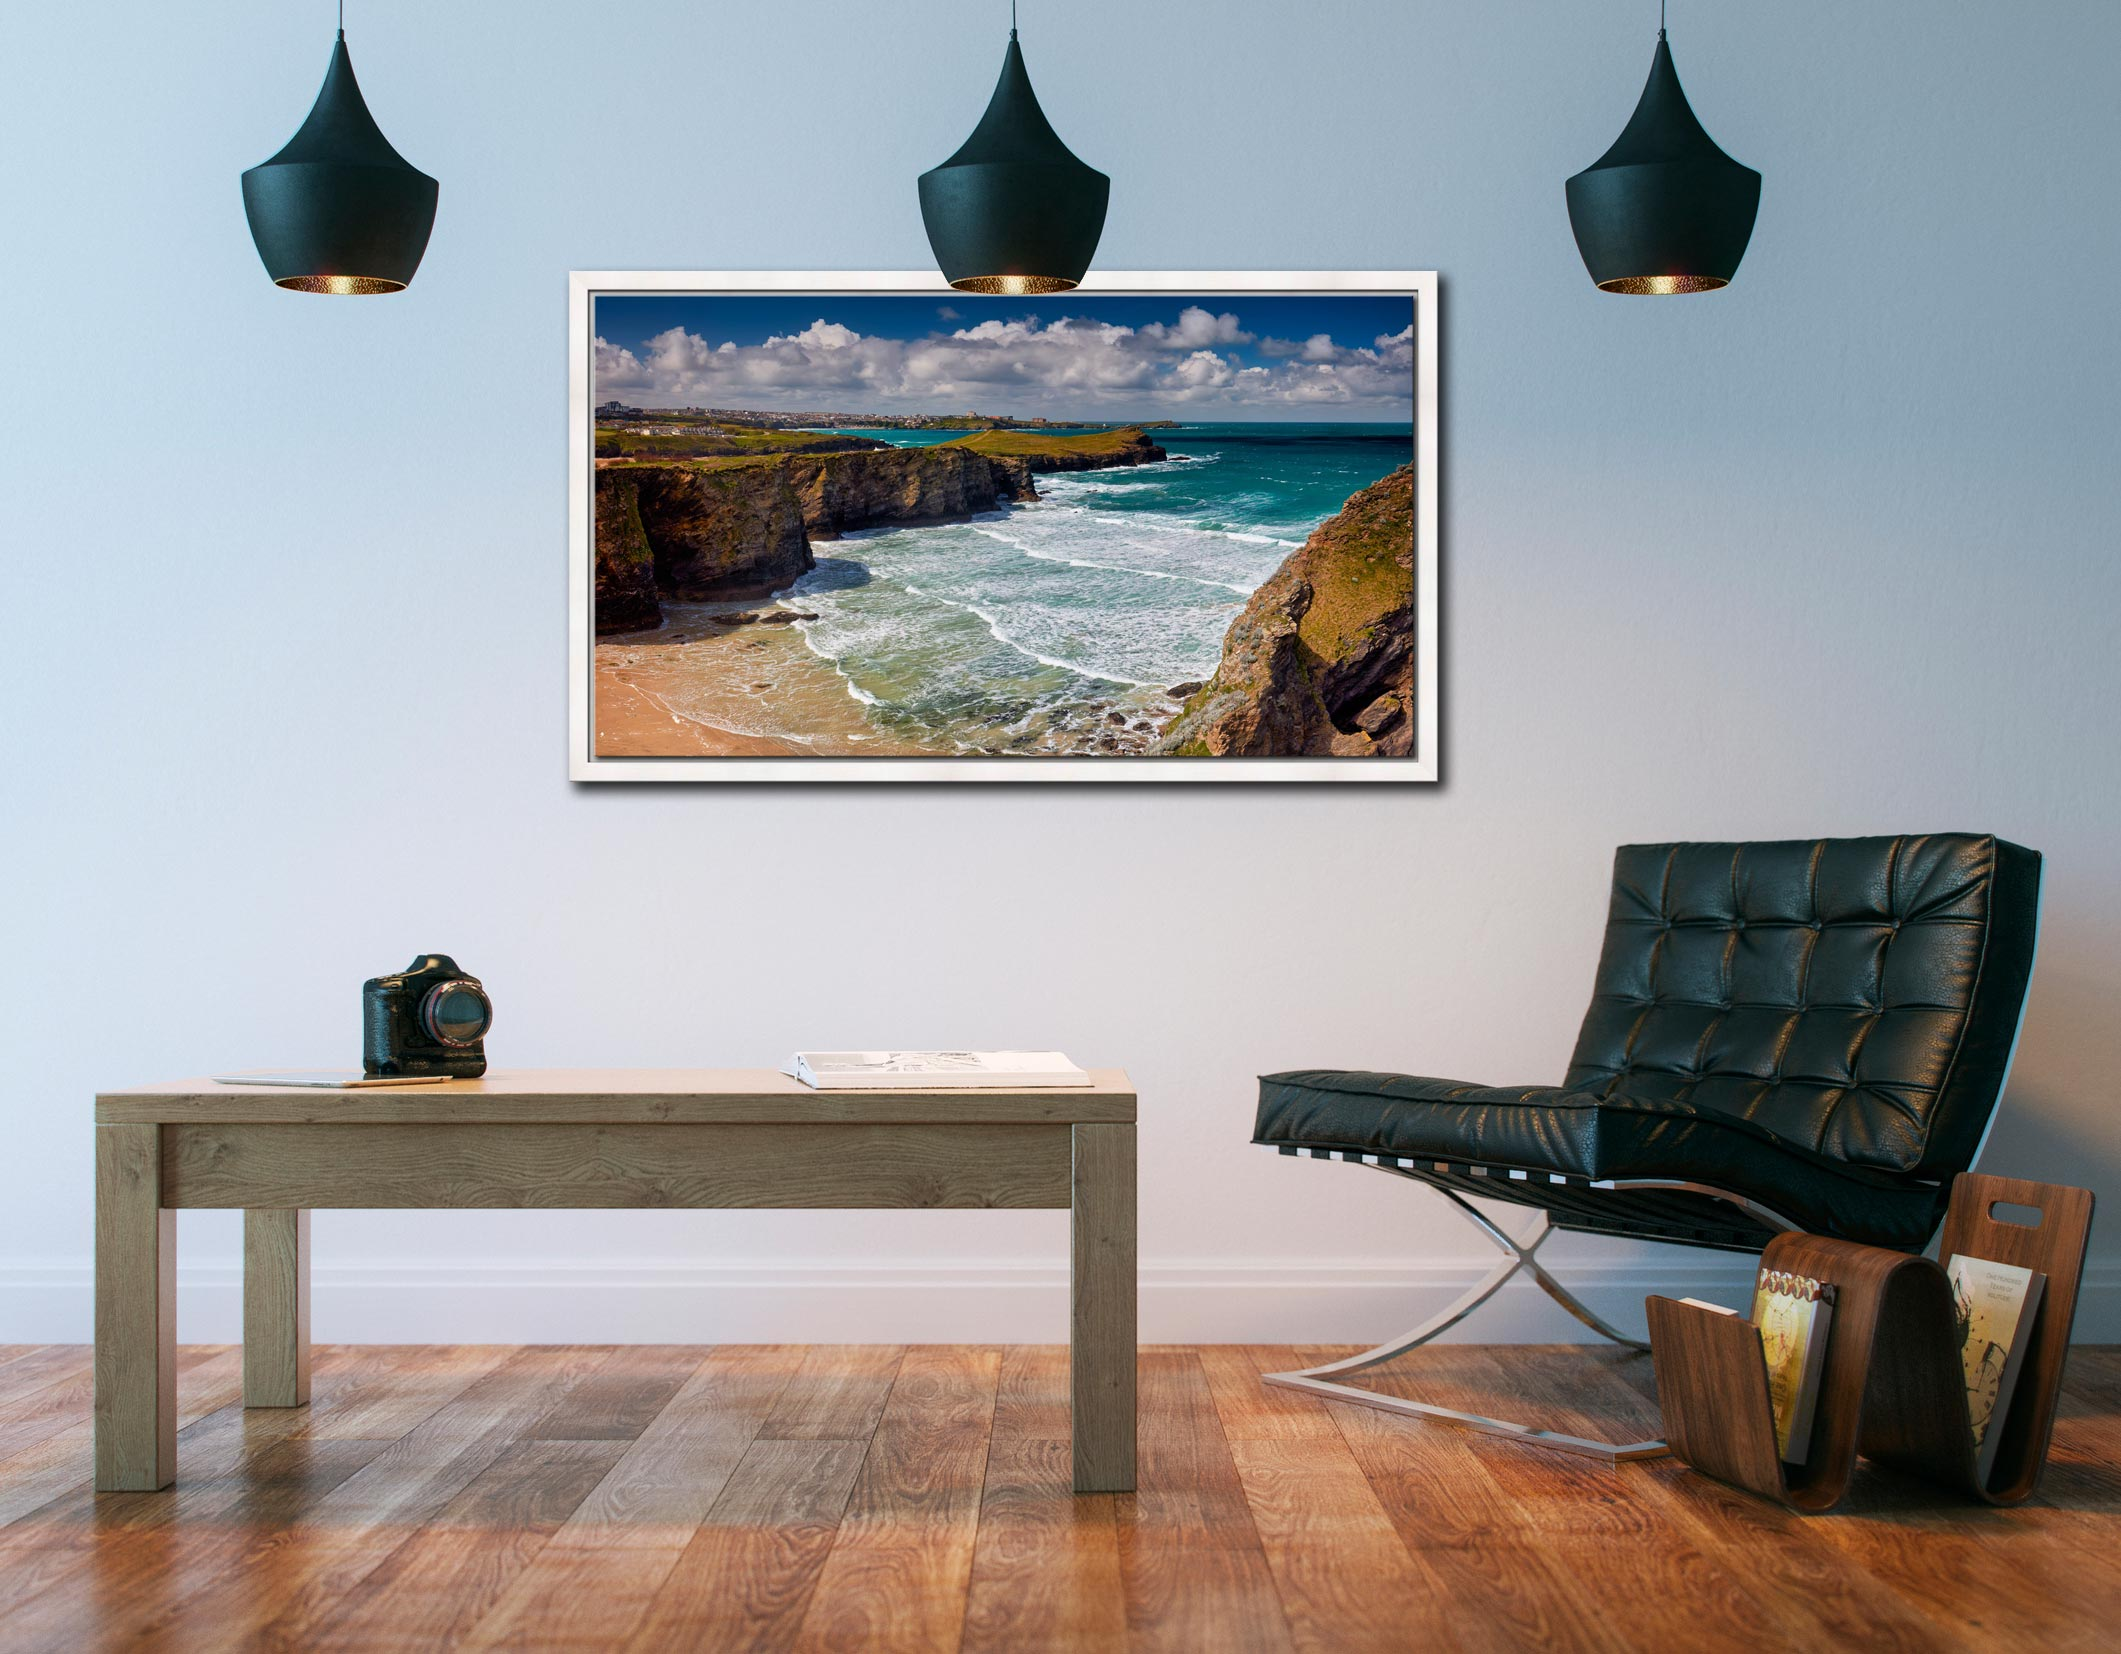 Porth Island - White Maple floater frame with acrylic glazing on Wall